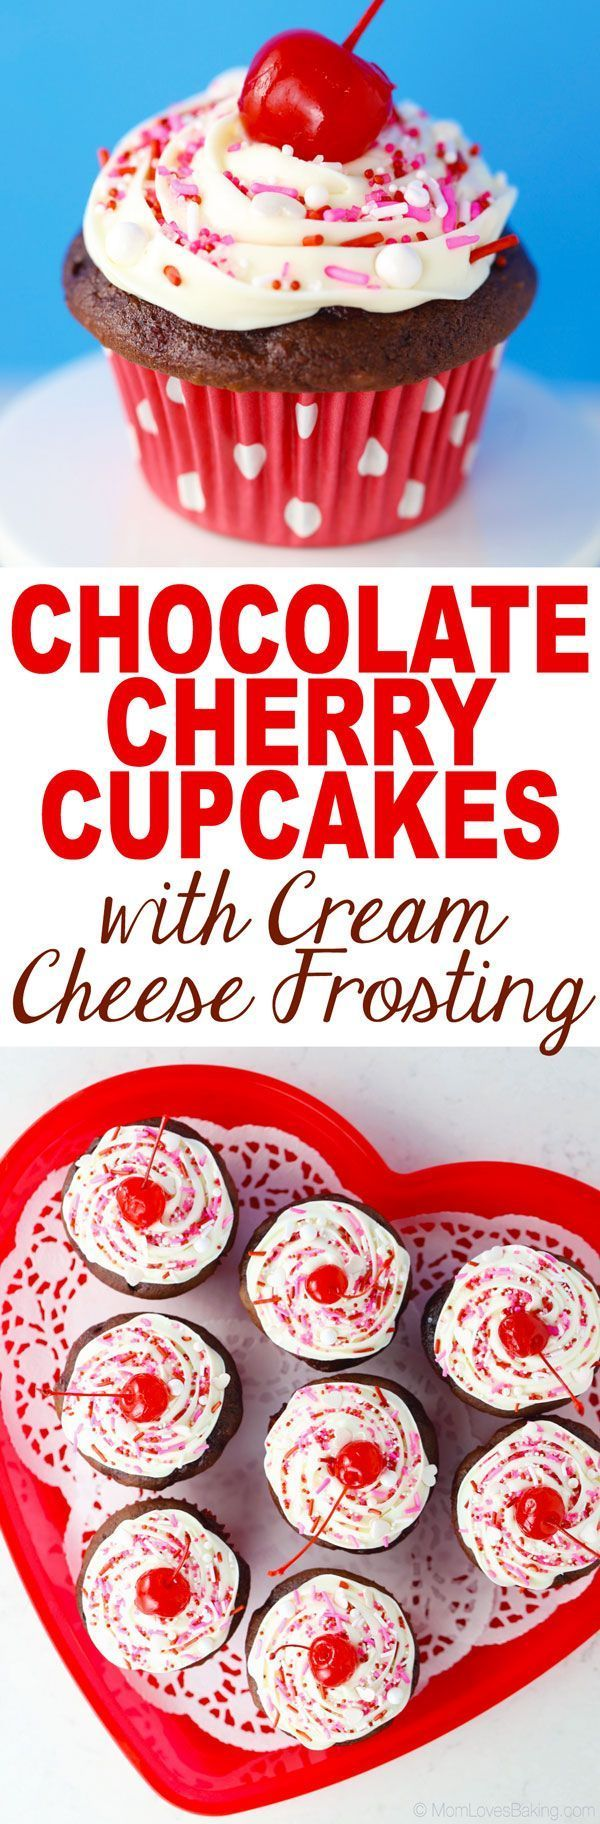 Chocolate Cherry Cupcakes! Perfect for Valentine's Day and super easy with @PillsburyBaking #ad #DoughboySurprise